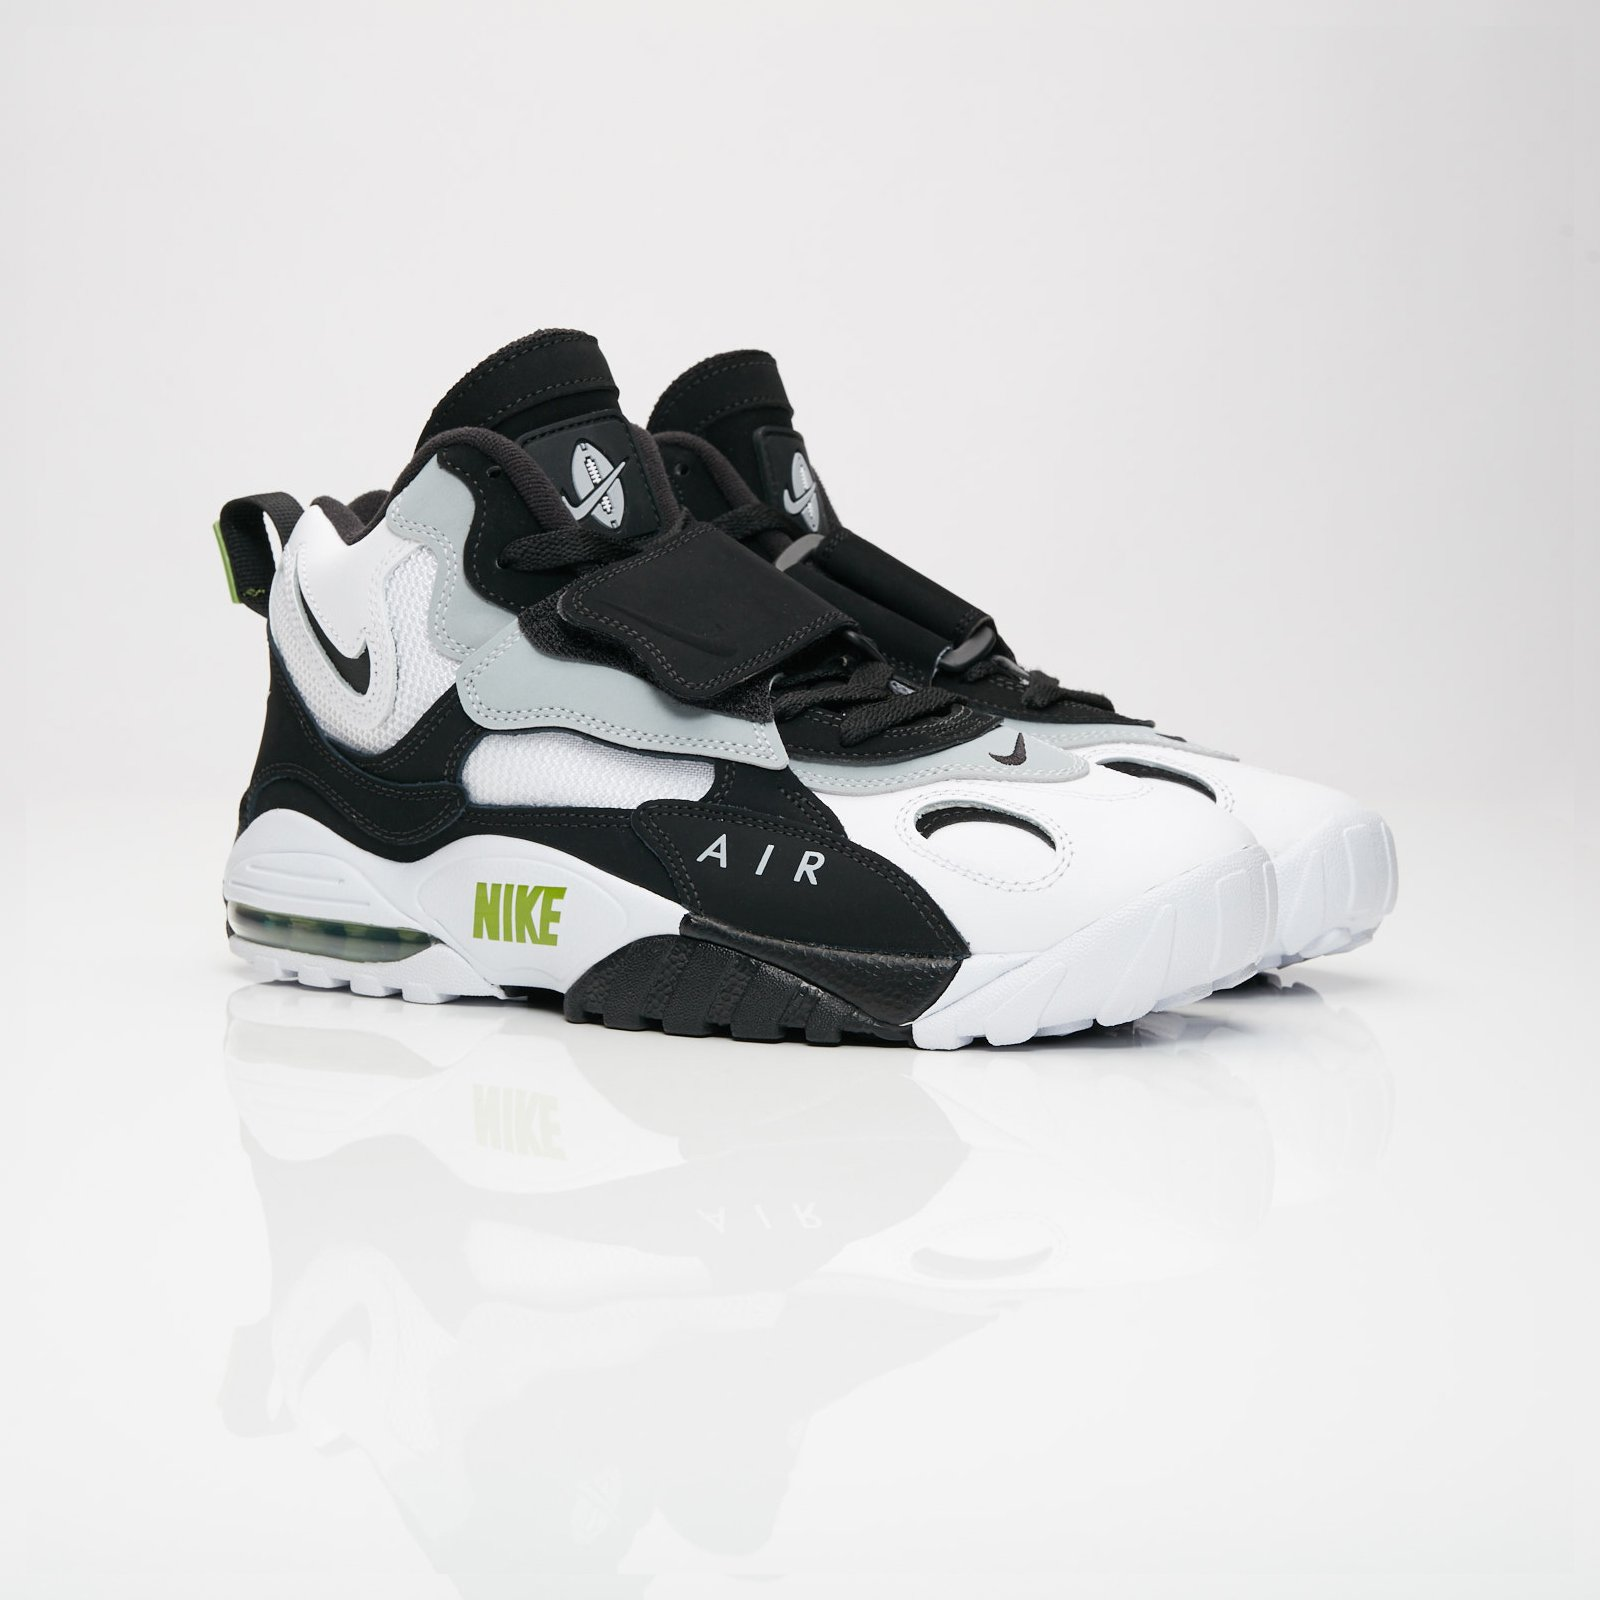 timeless design 76199 8864a Nike Sportswear Air Max Speed Turf